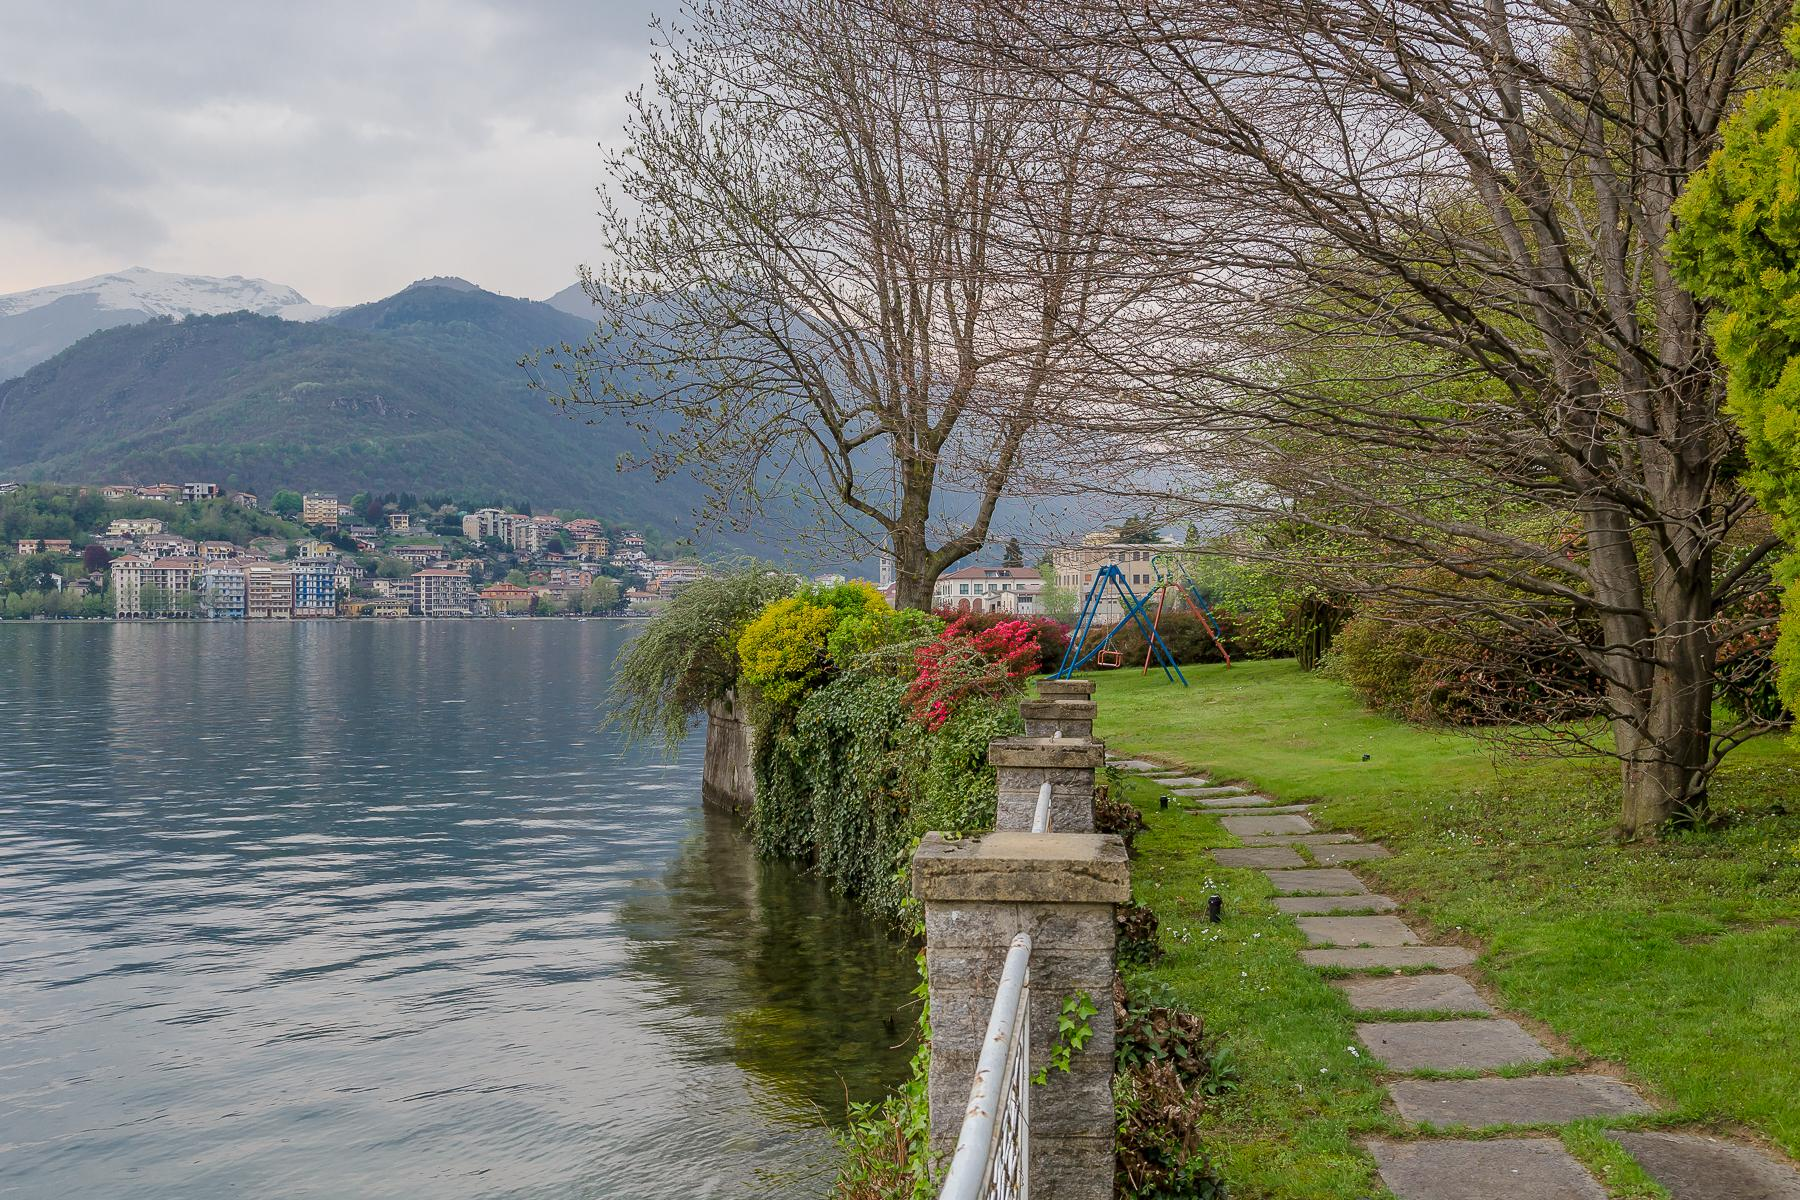 The 'Italian flavor' on Lake Orta - 26